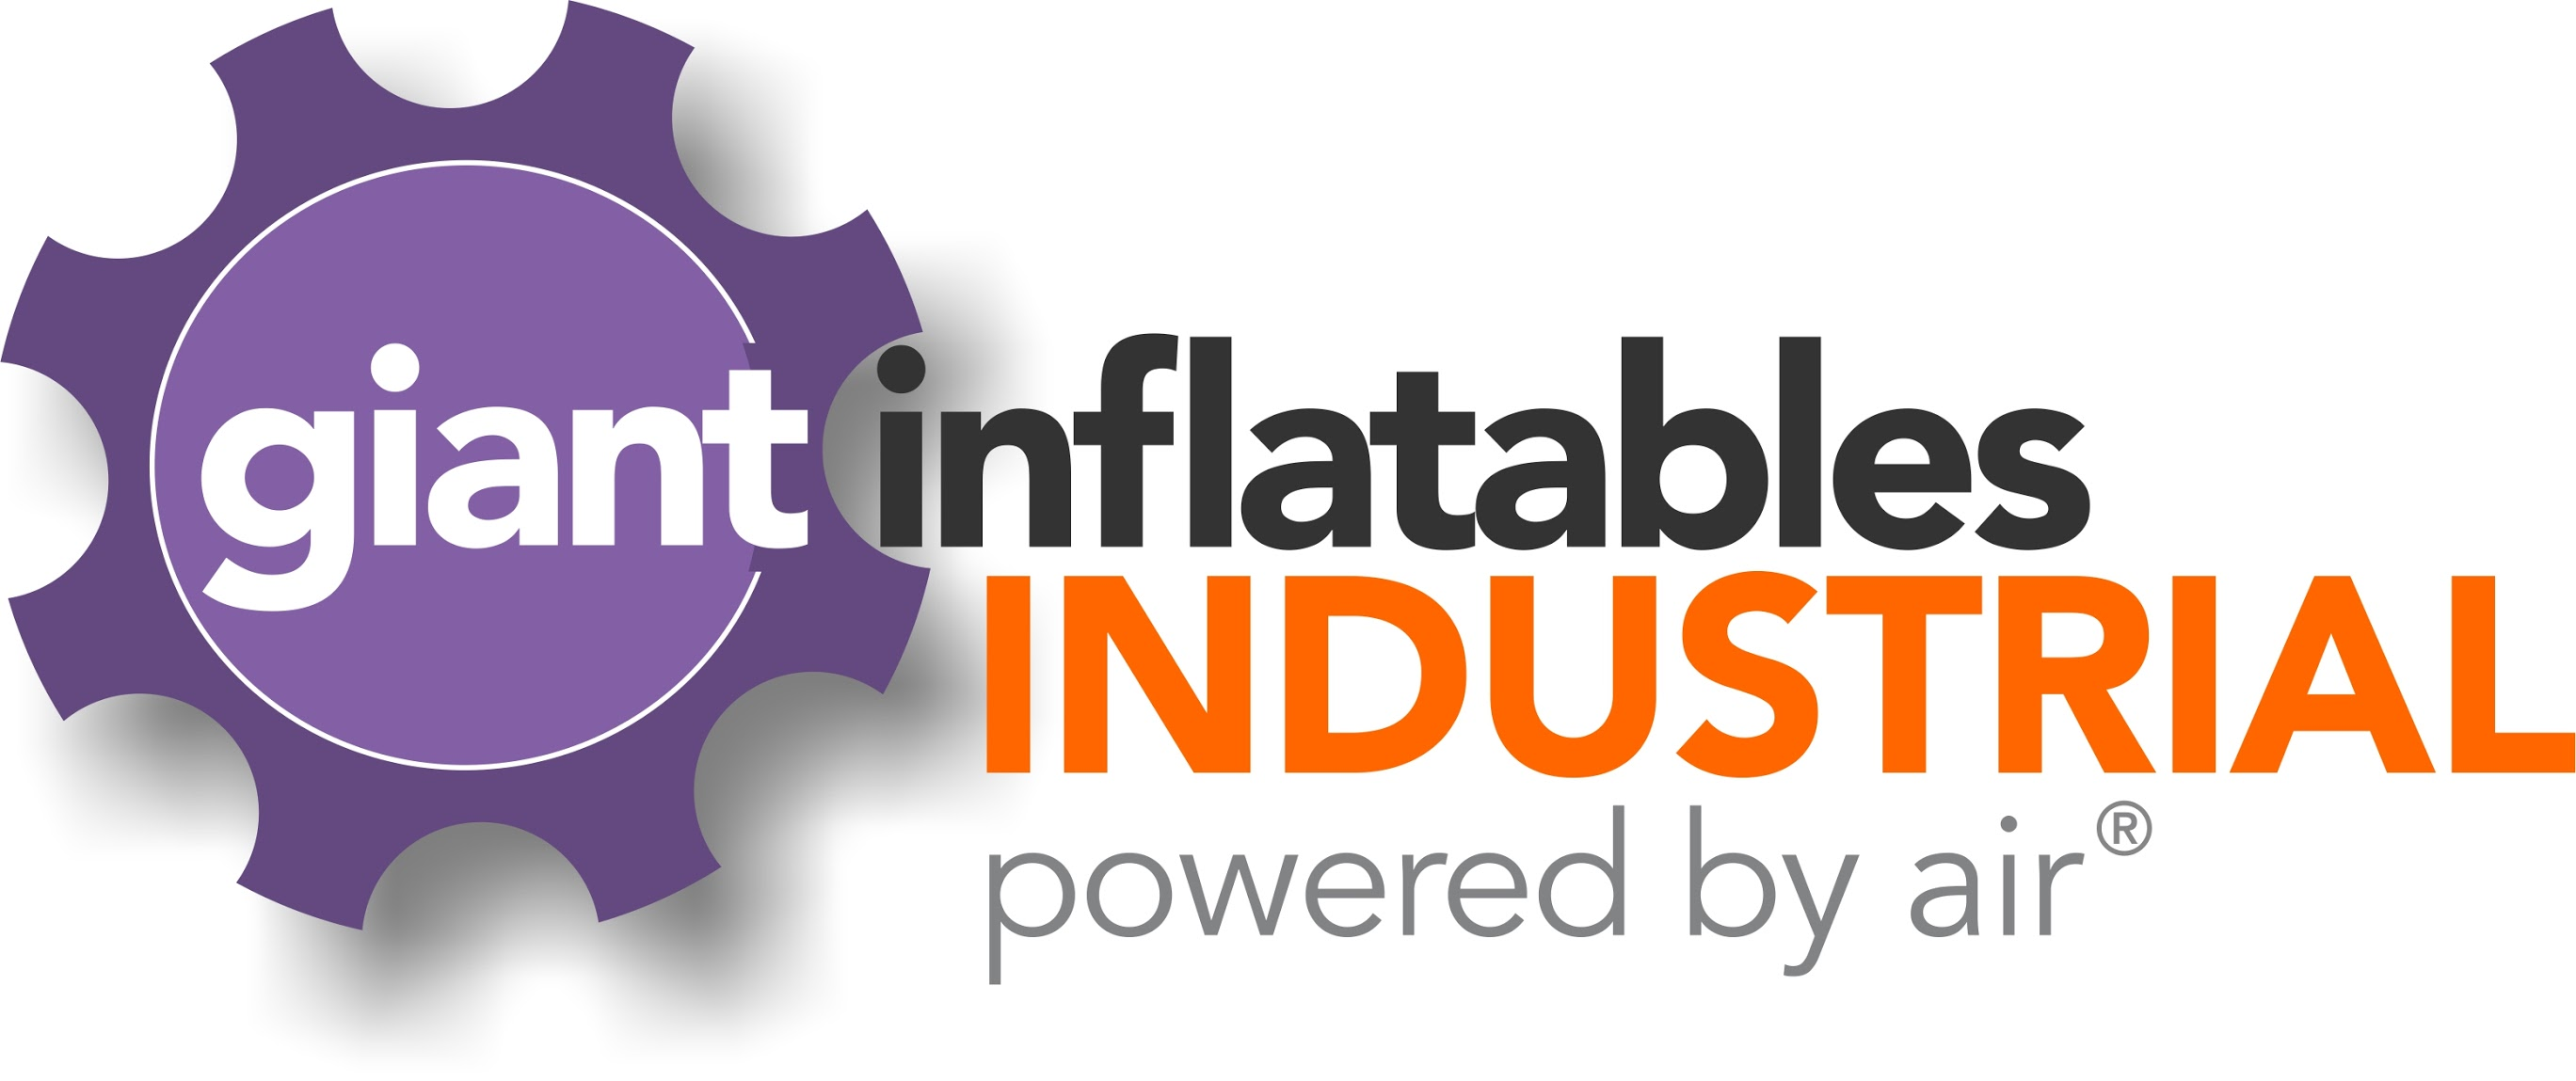 Giant Inflatables Industrial -  Australia's No.1 Industrial Inflatable Company